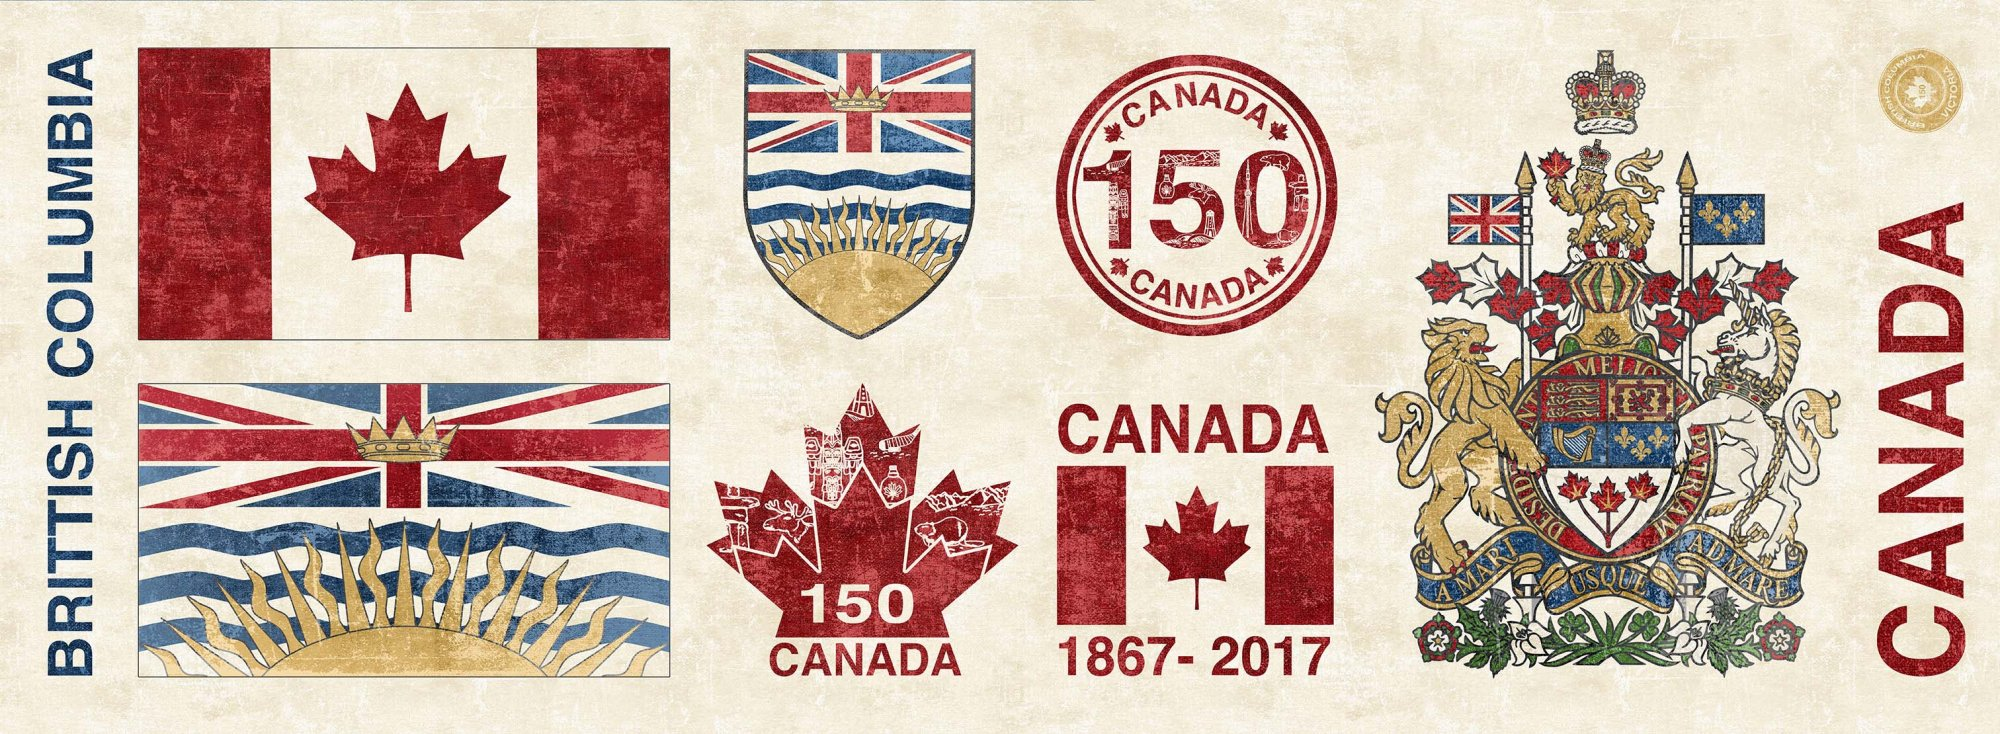 Panel #282 - Canadian Sesquicentennial - British Columbia